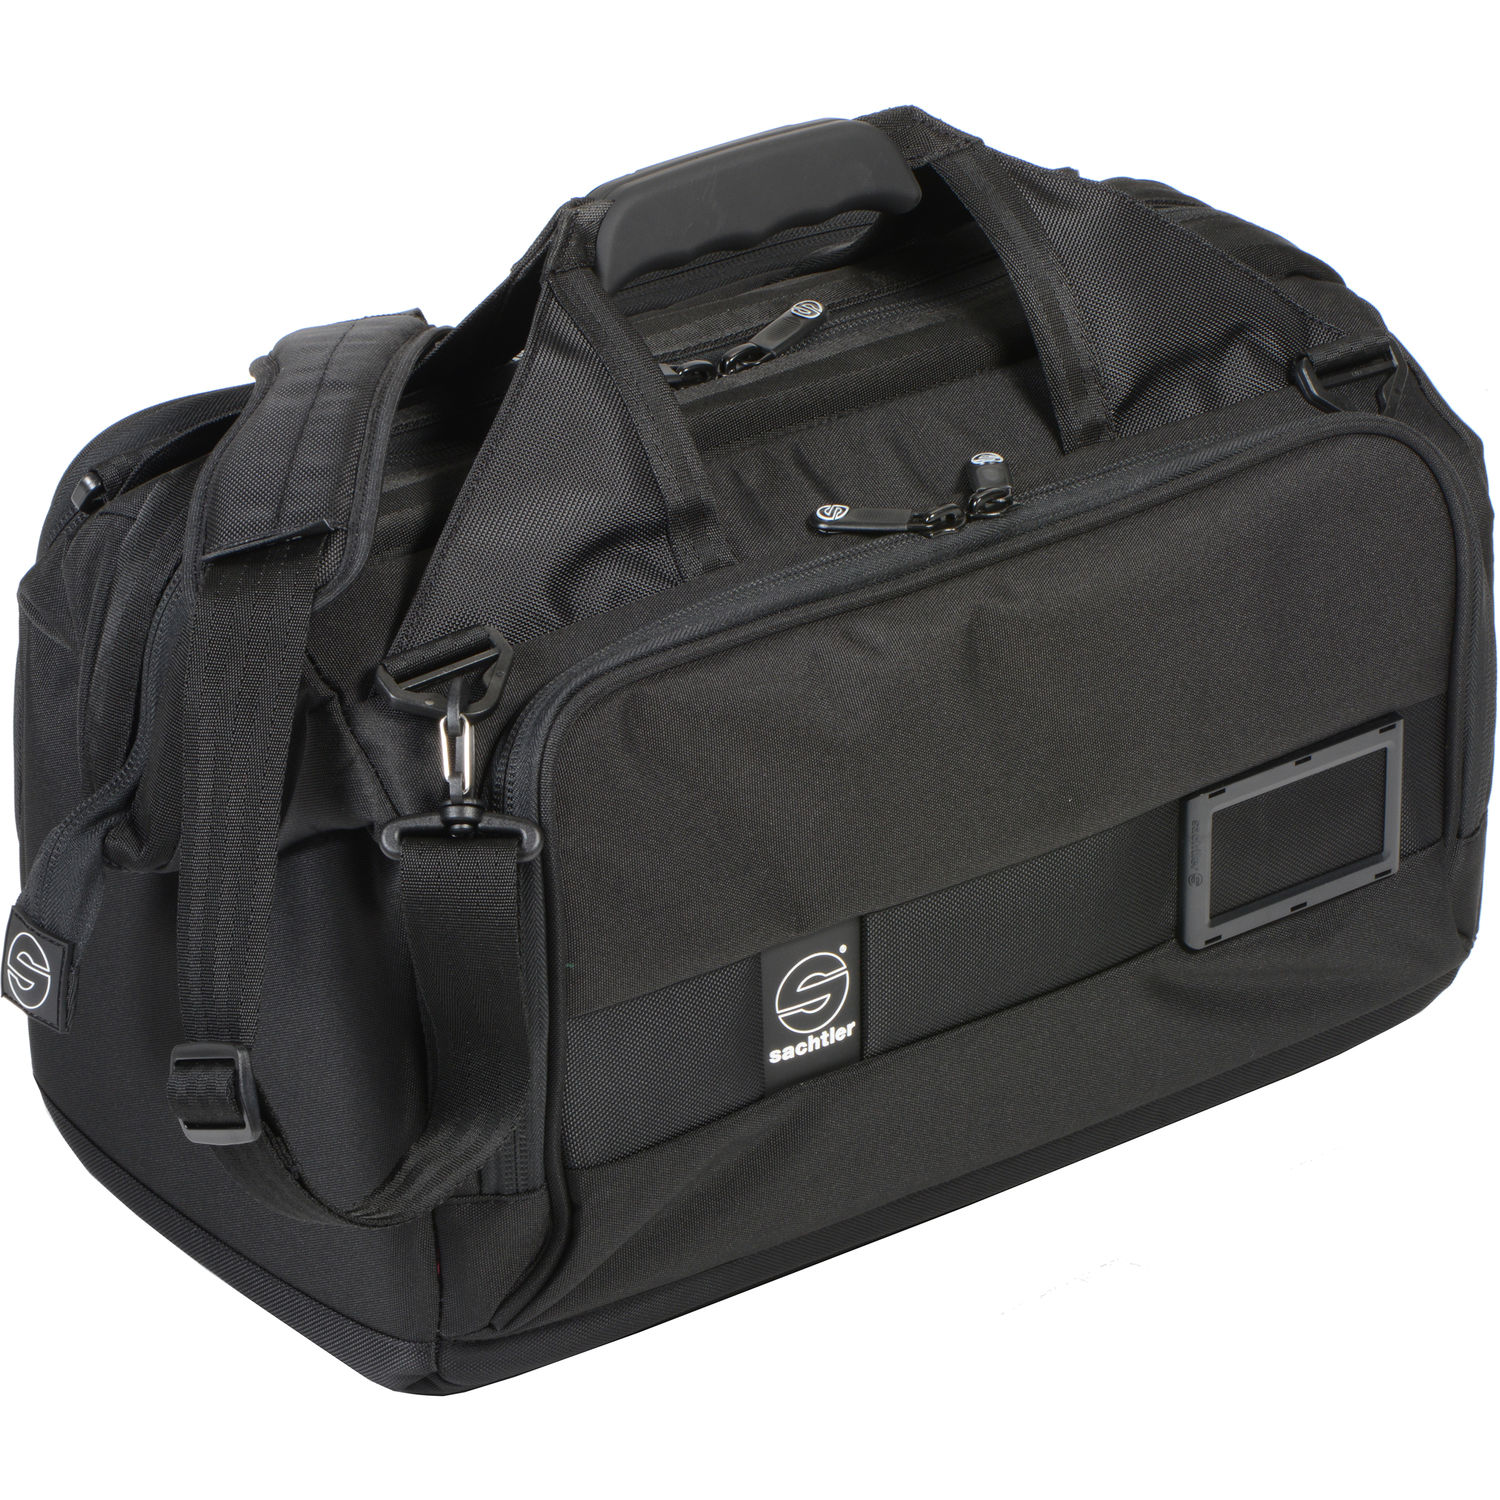 Sachtler Dr. Bag - 3 Professional Video Bag